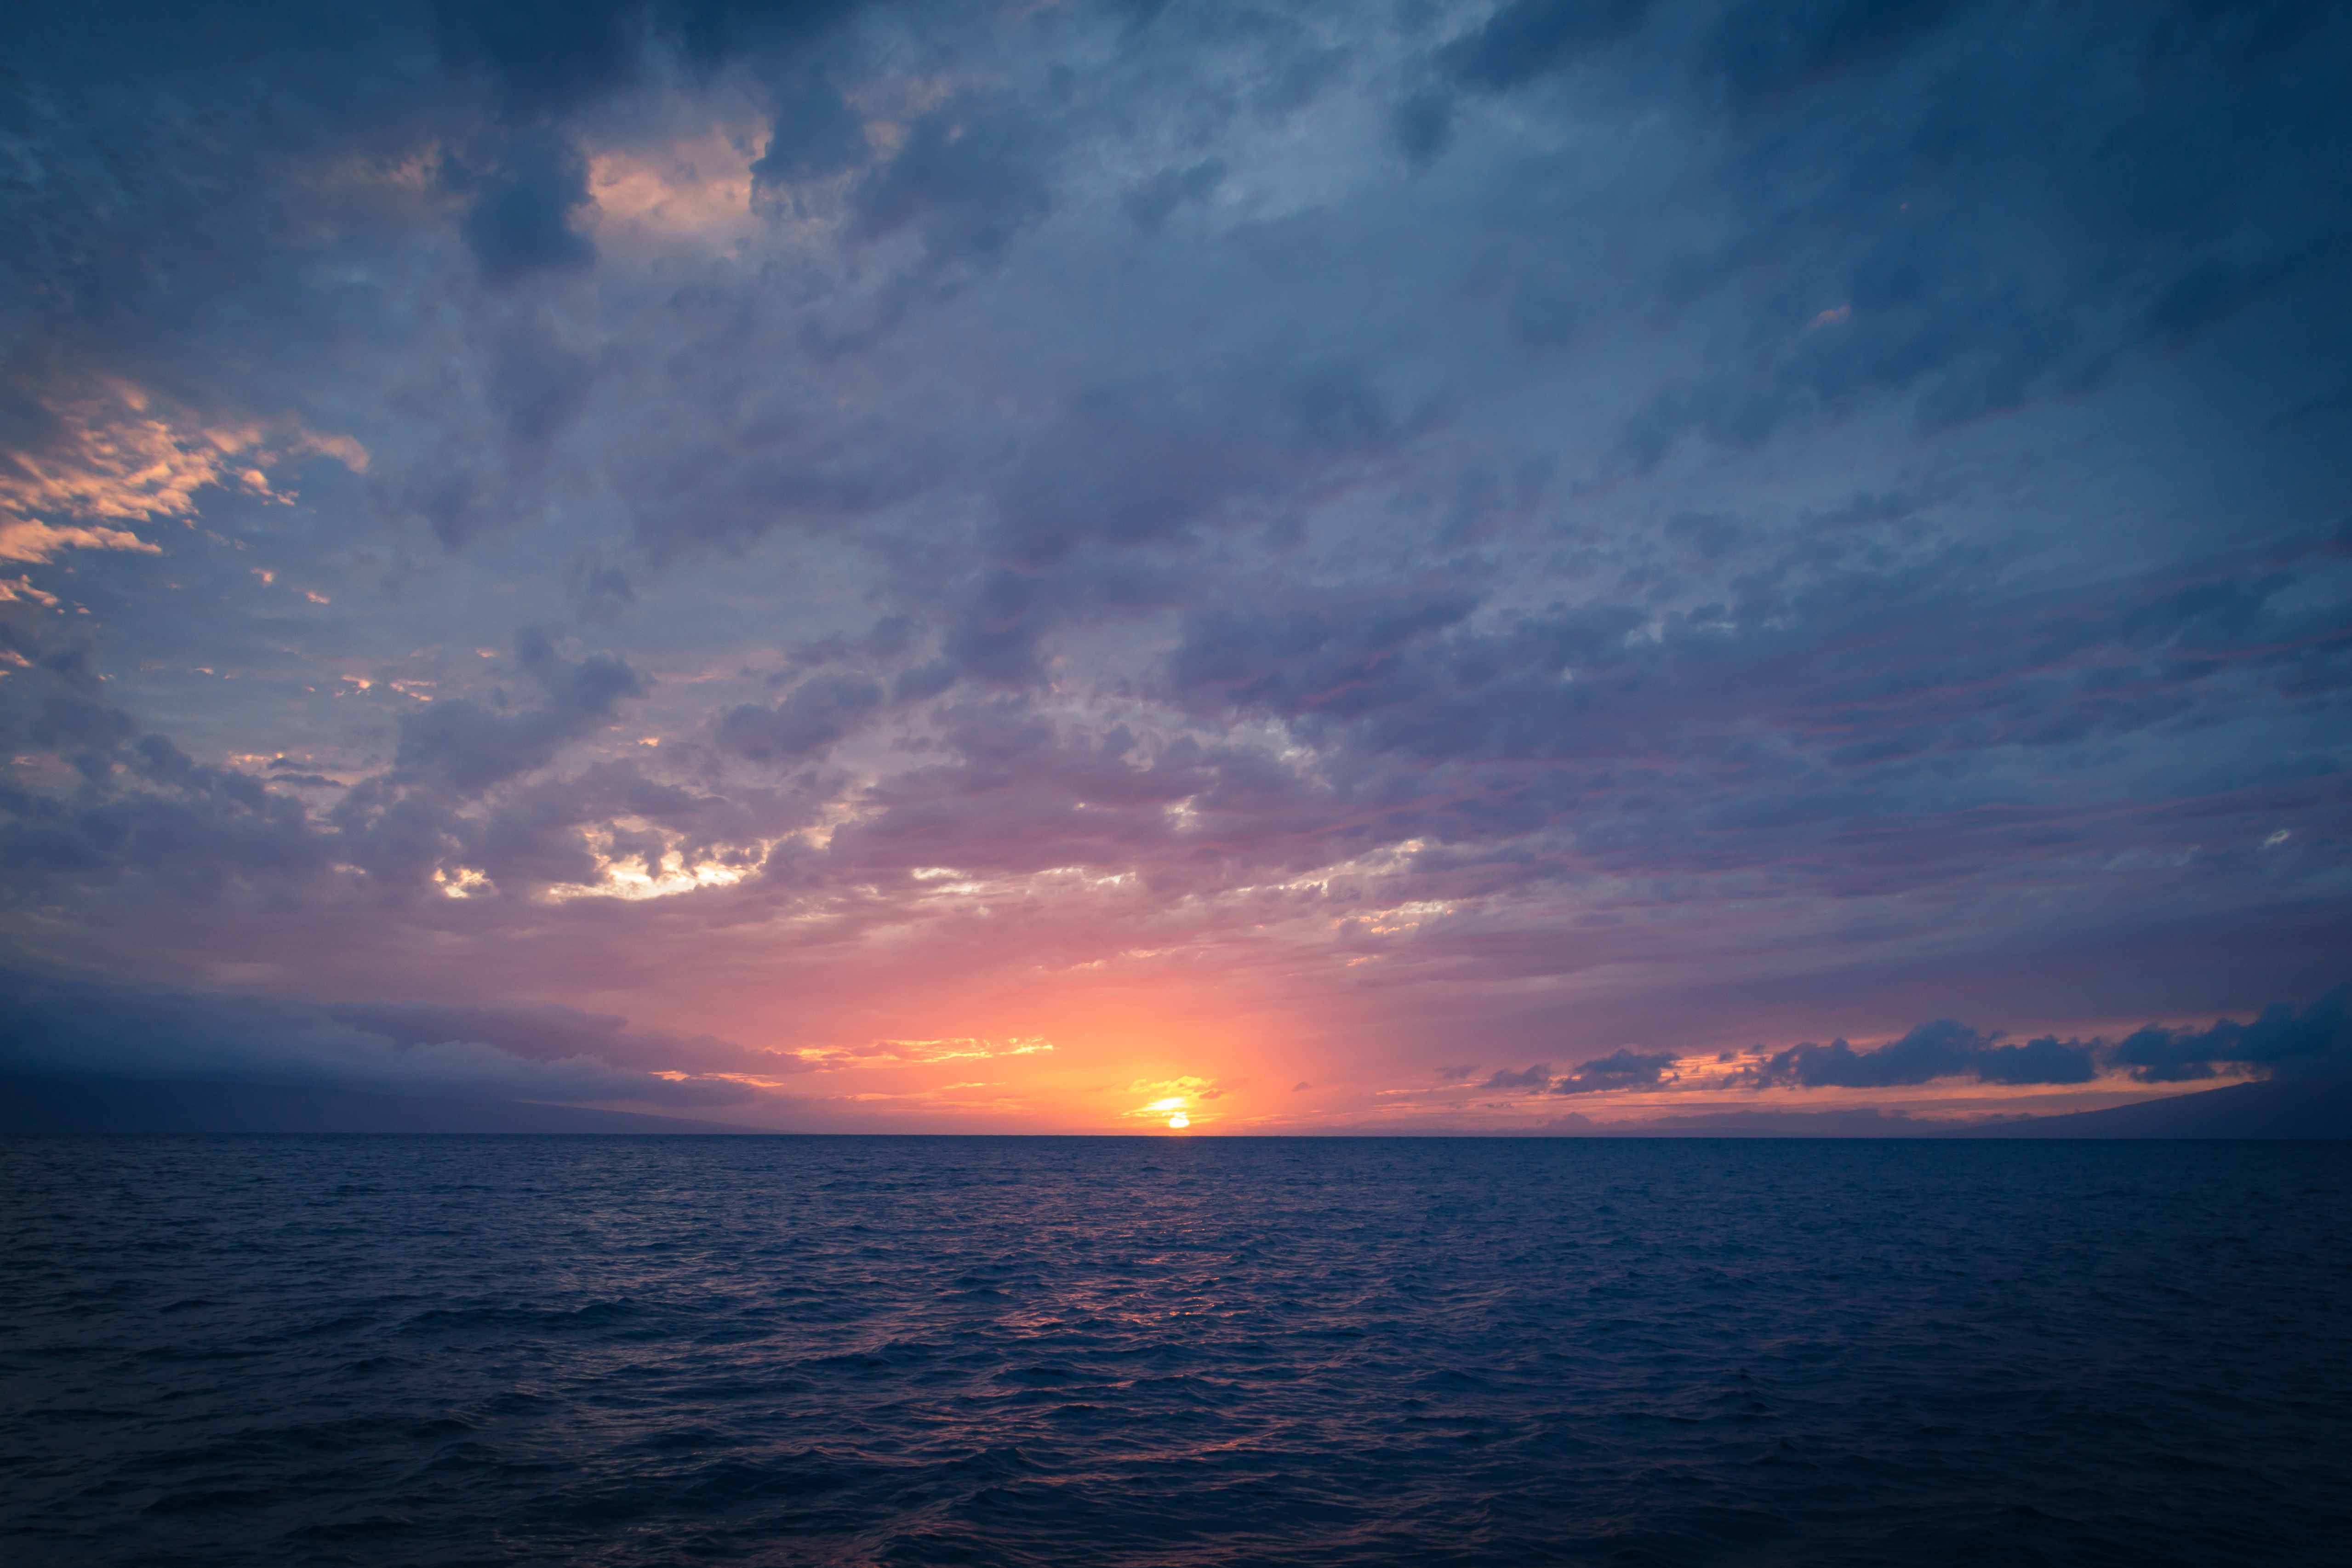 HD Wallpaper Ocean sunset off the Kaanapali coast Maui HI 5116x3411